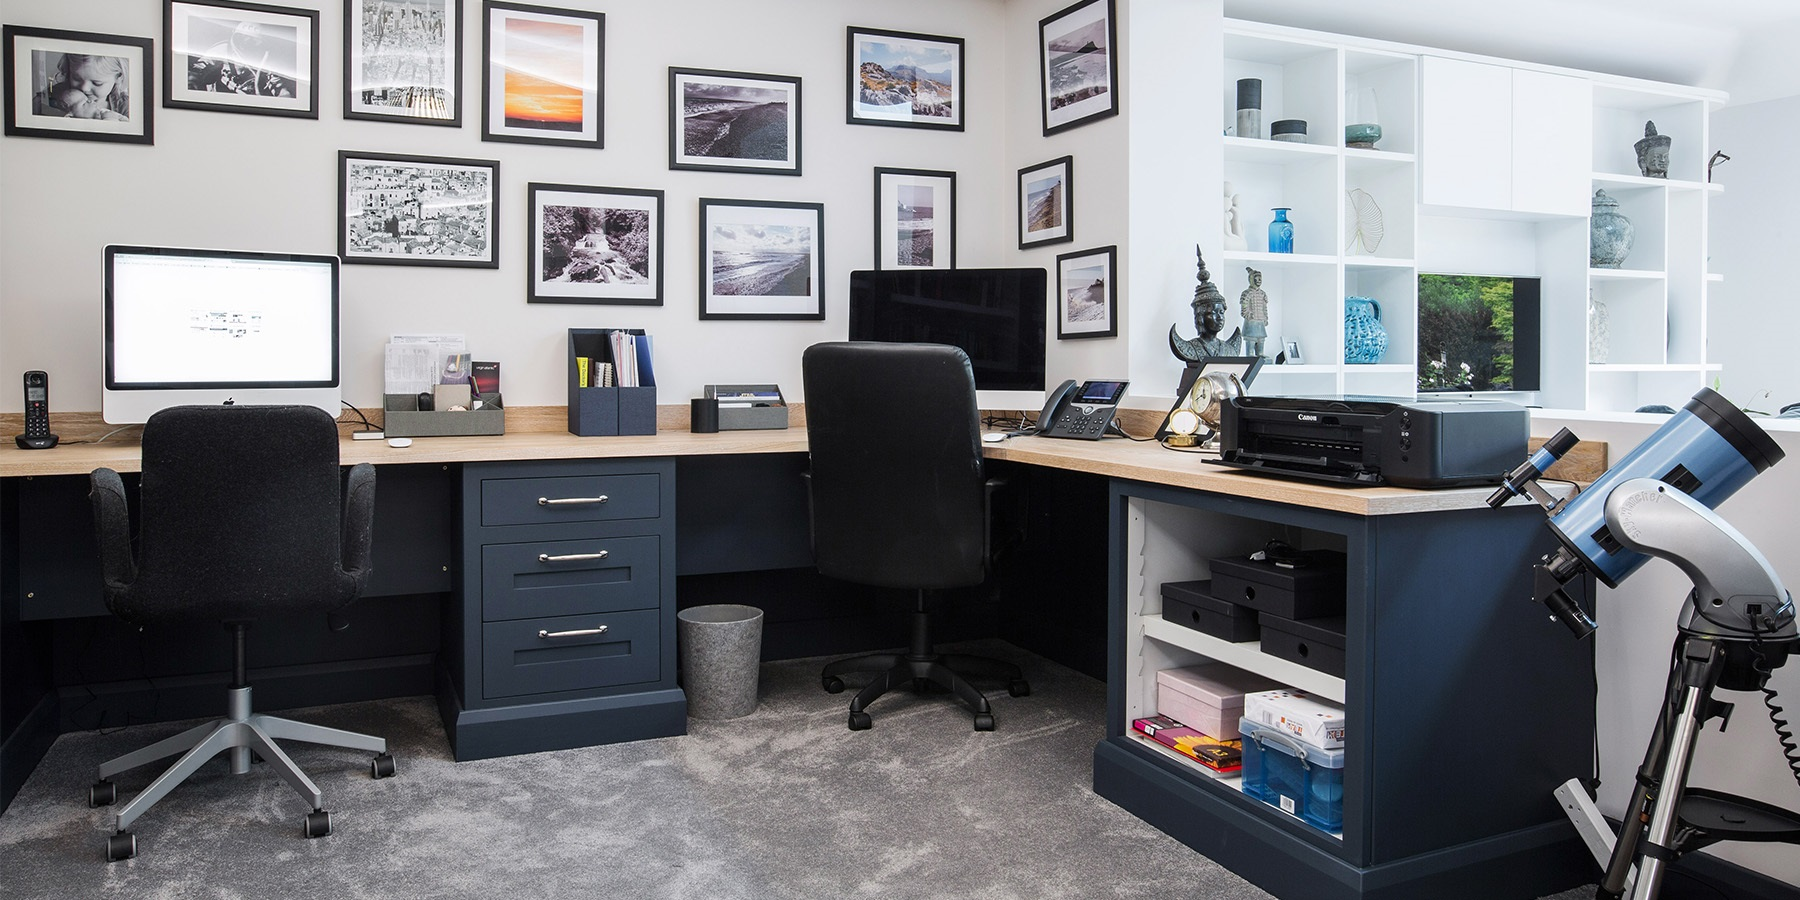 Custom Made Home Office Furniture - Bespoke, made-to-measure home office furniture in Royal Blue, with wooden worktops.